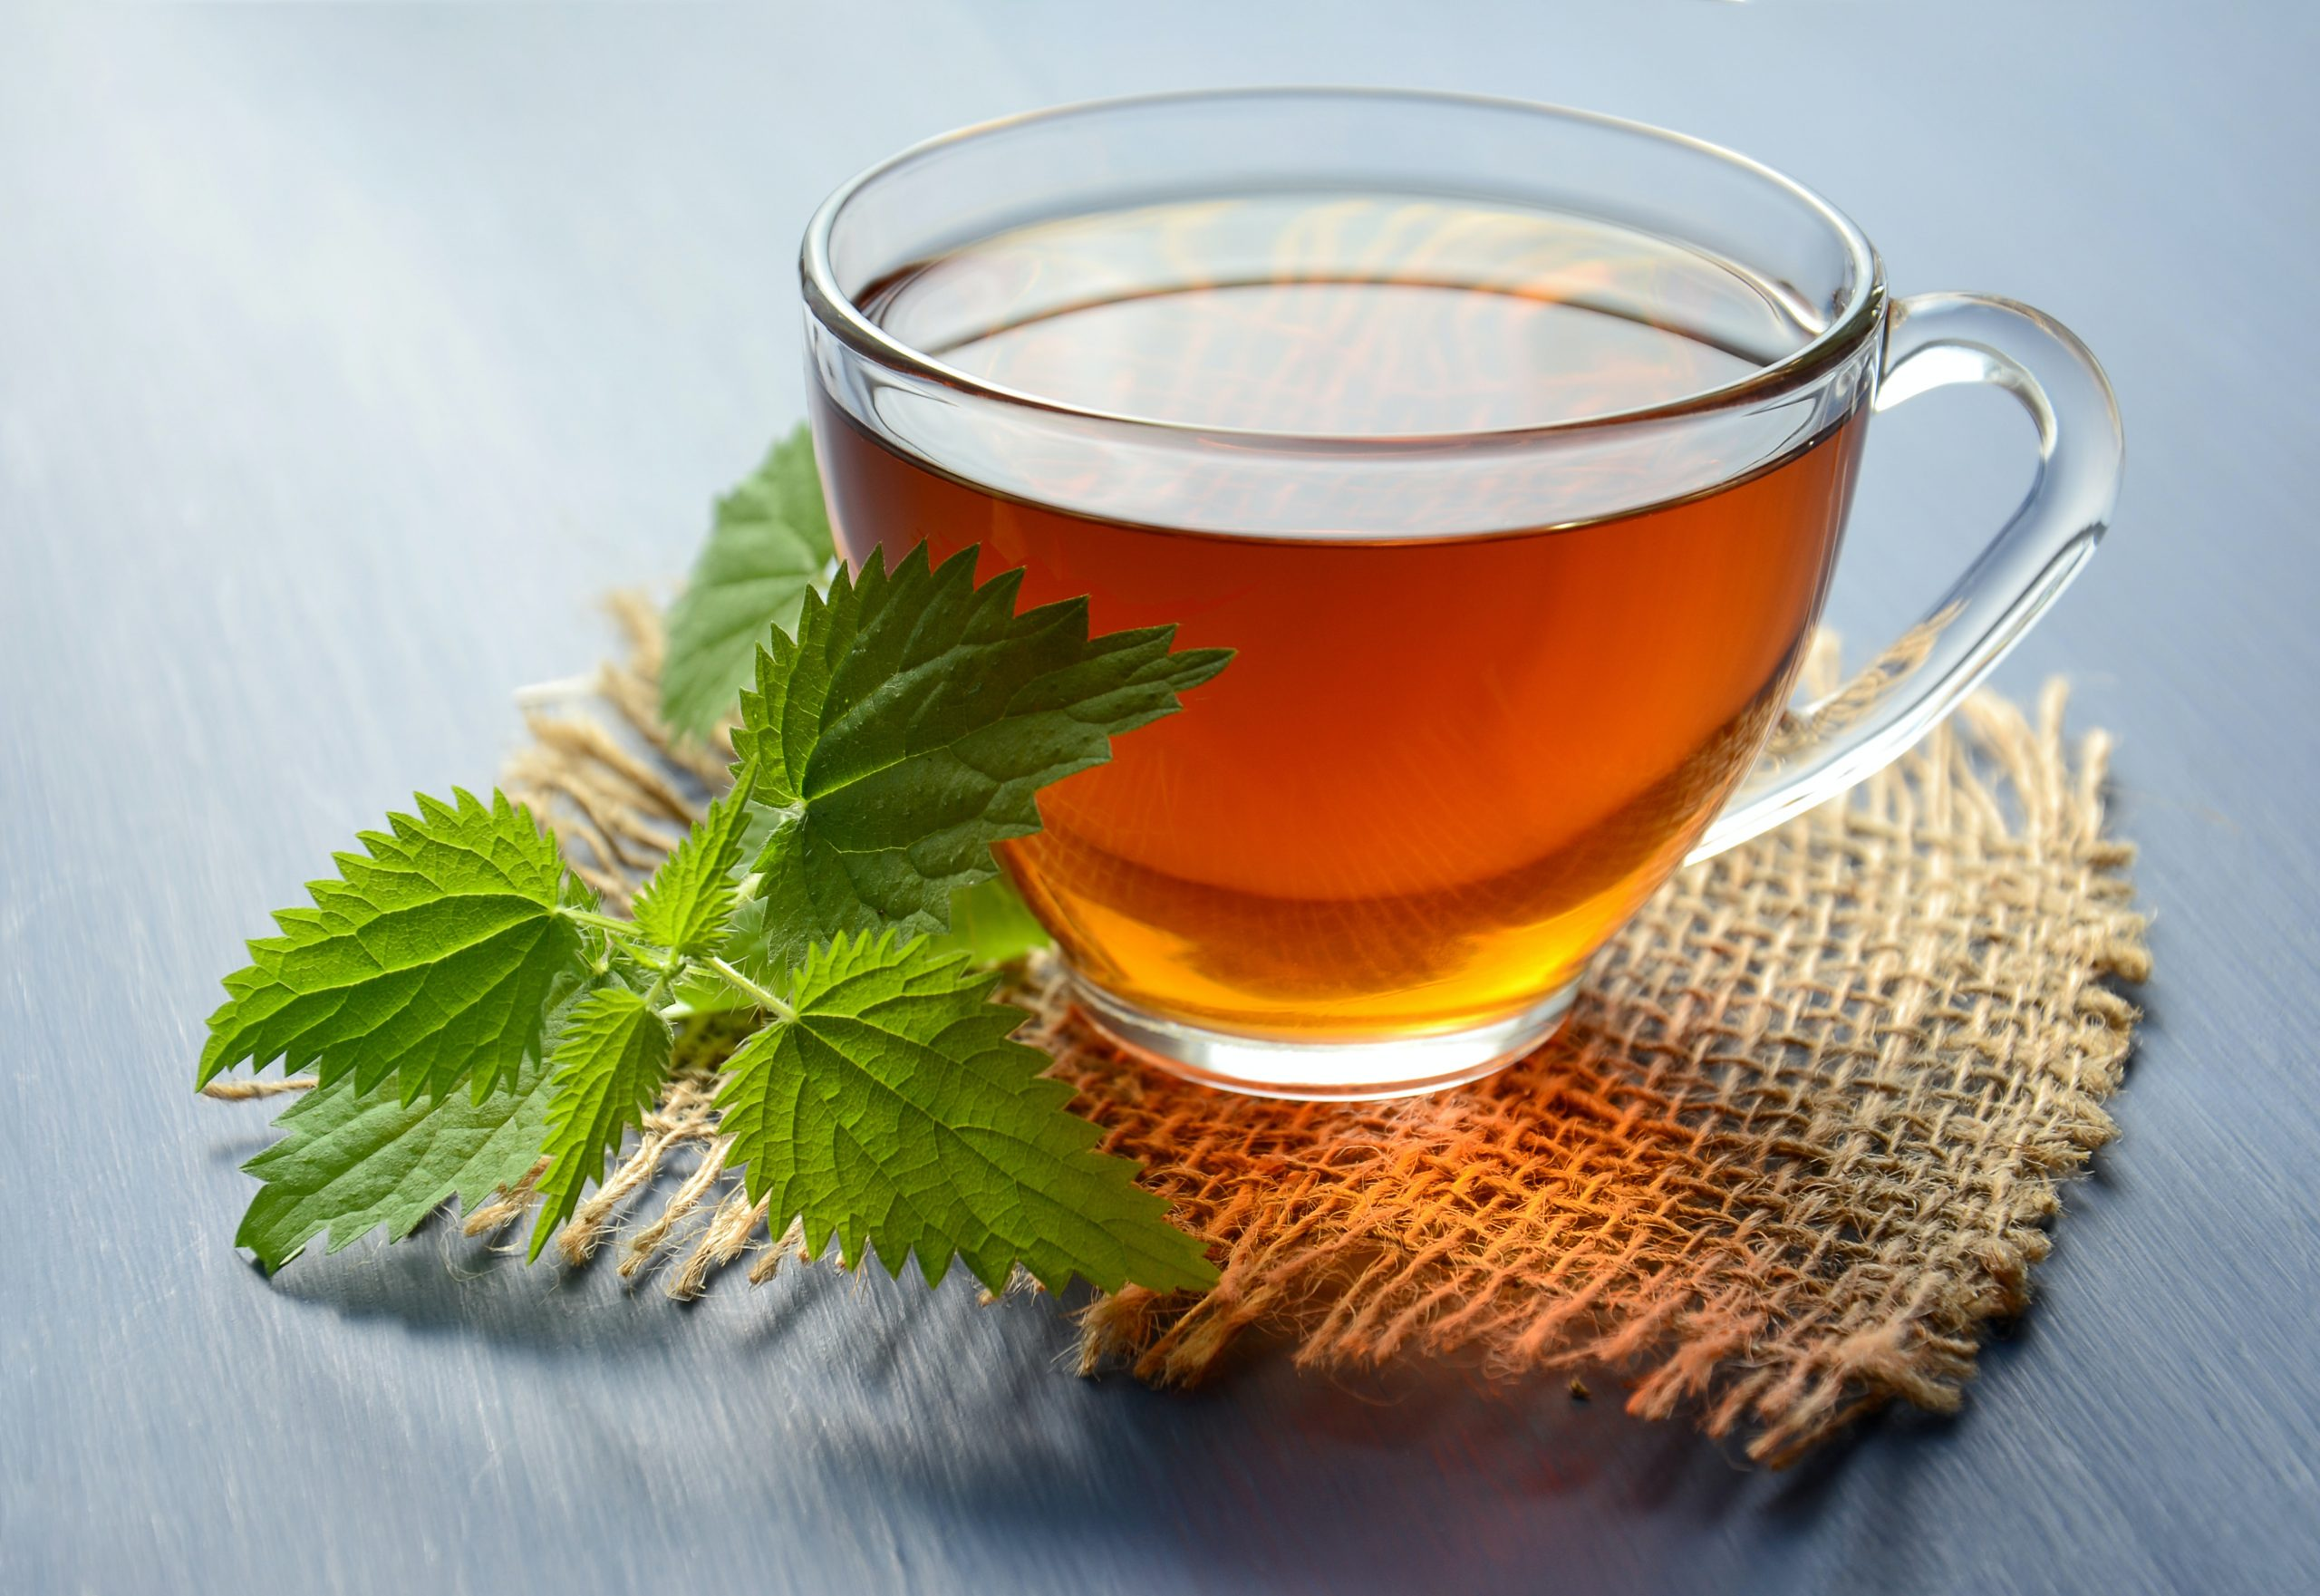 Top 9 Types of Organic Tea & Their Benefits